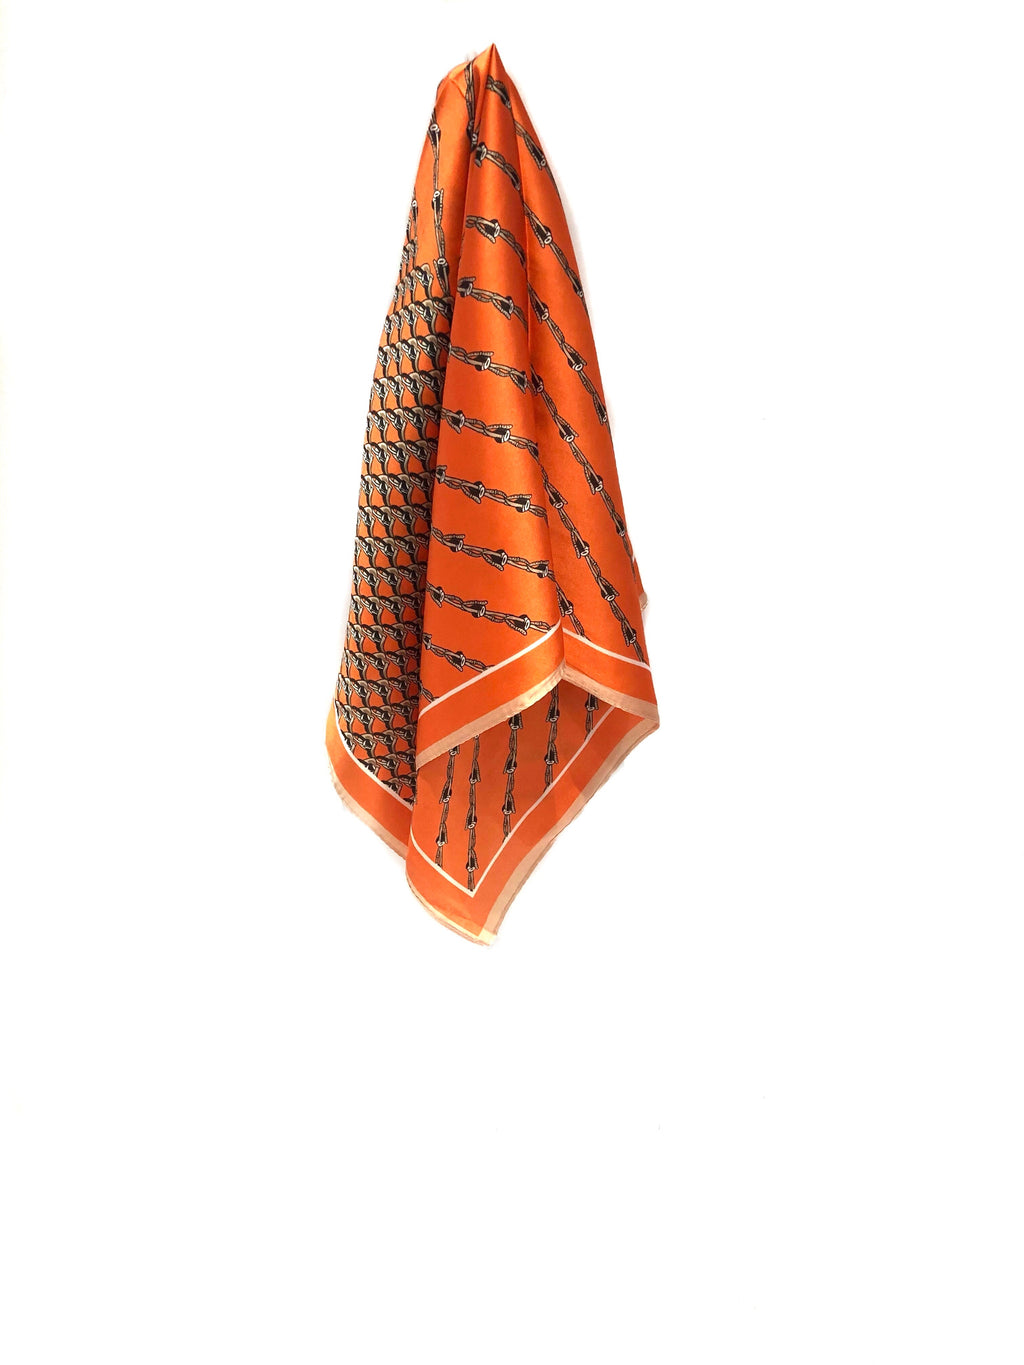 PINKPINEAPPLE ORANGE SILK SCARF (4921345704007)